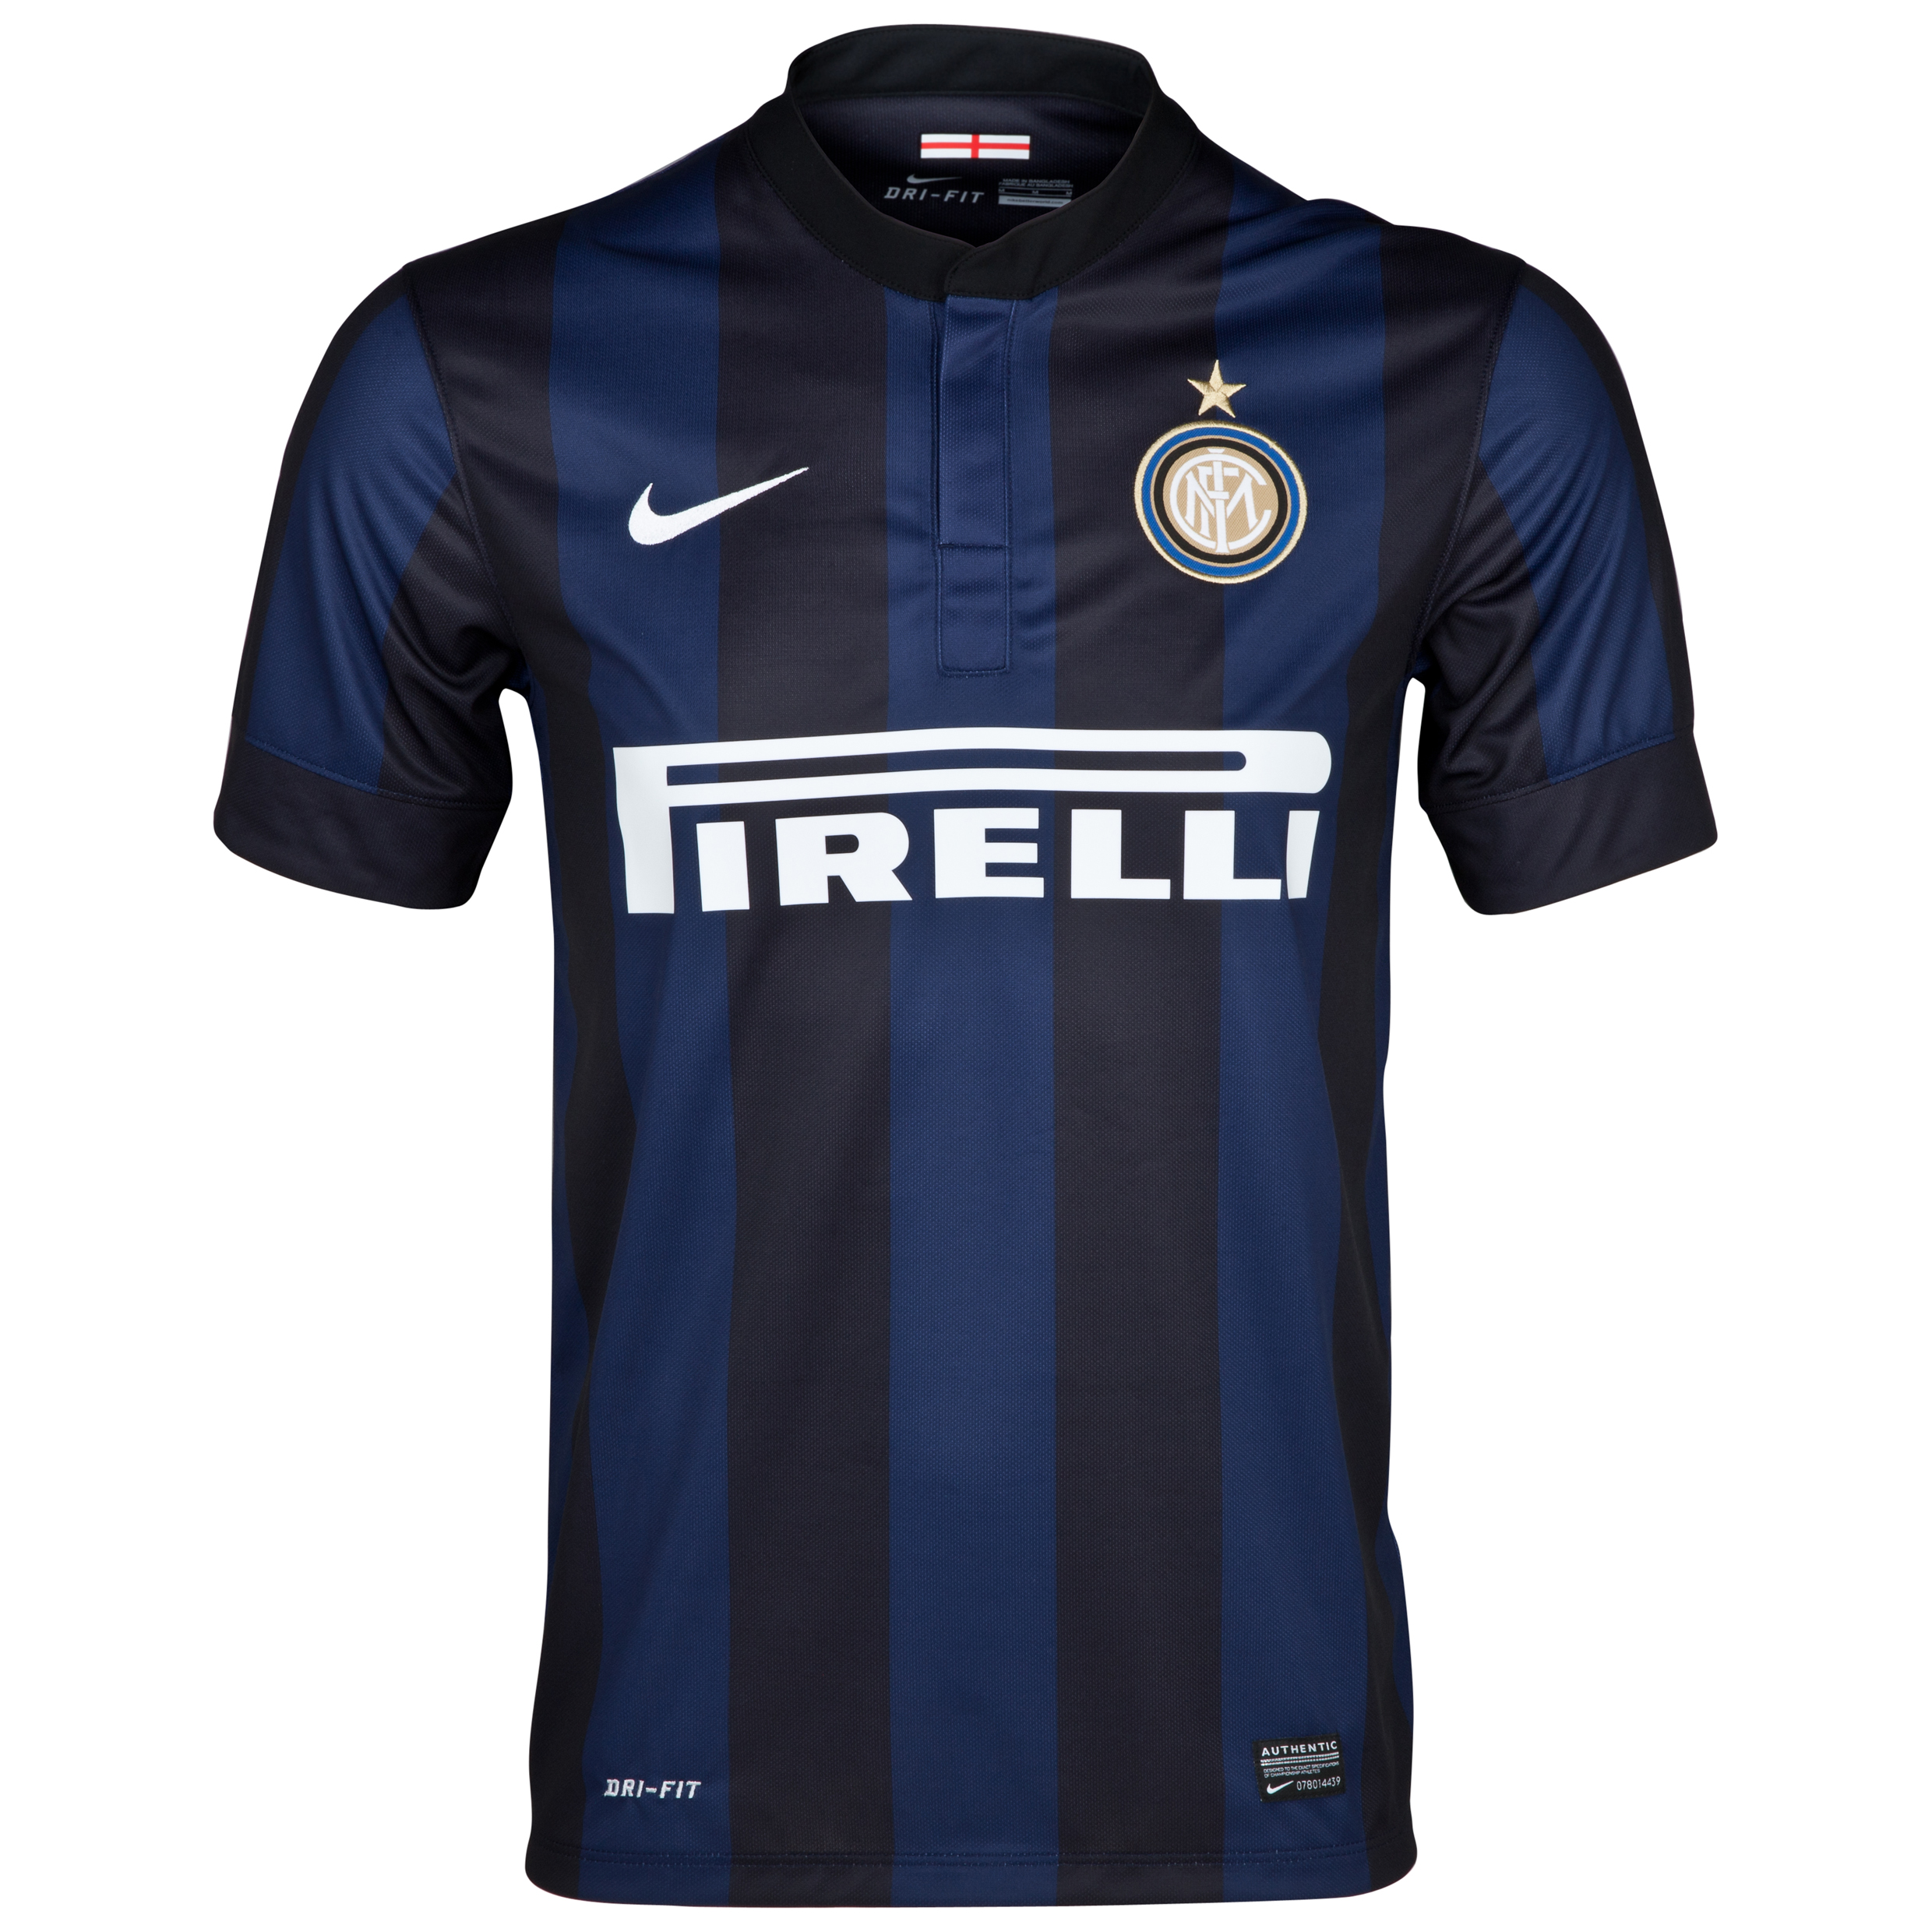 Inter Milan Home Shirt 2013/14